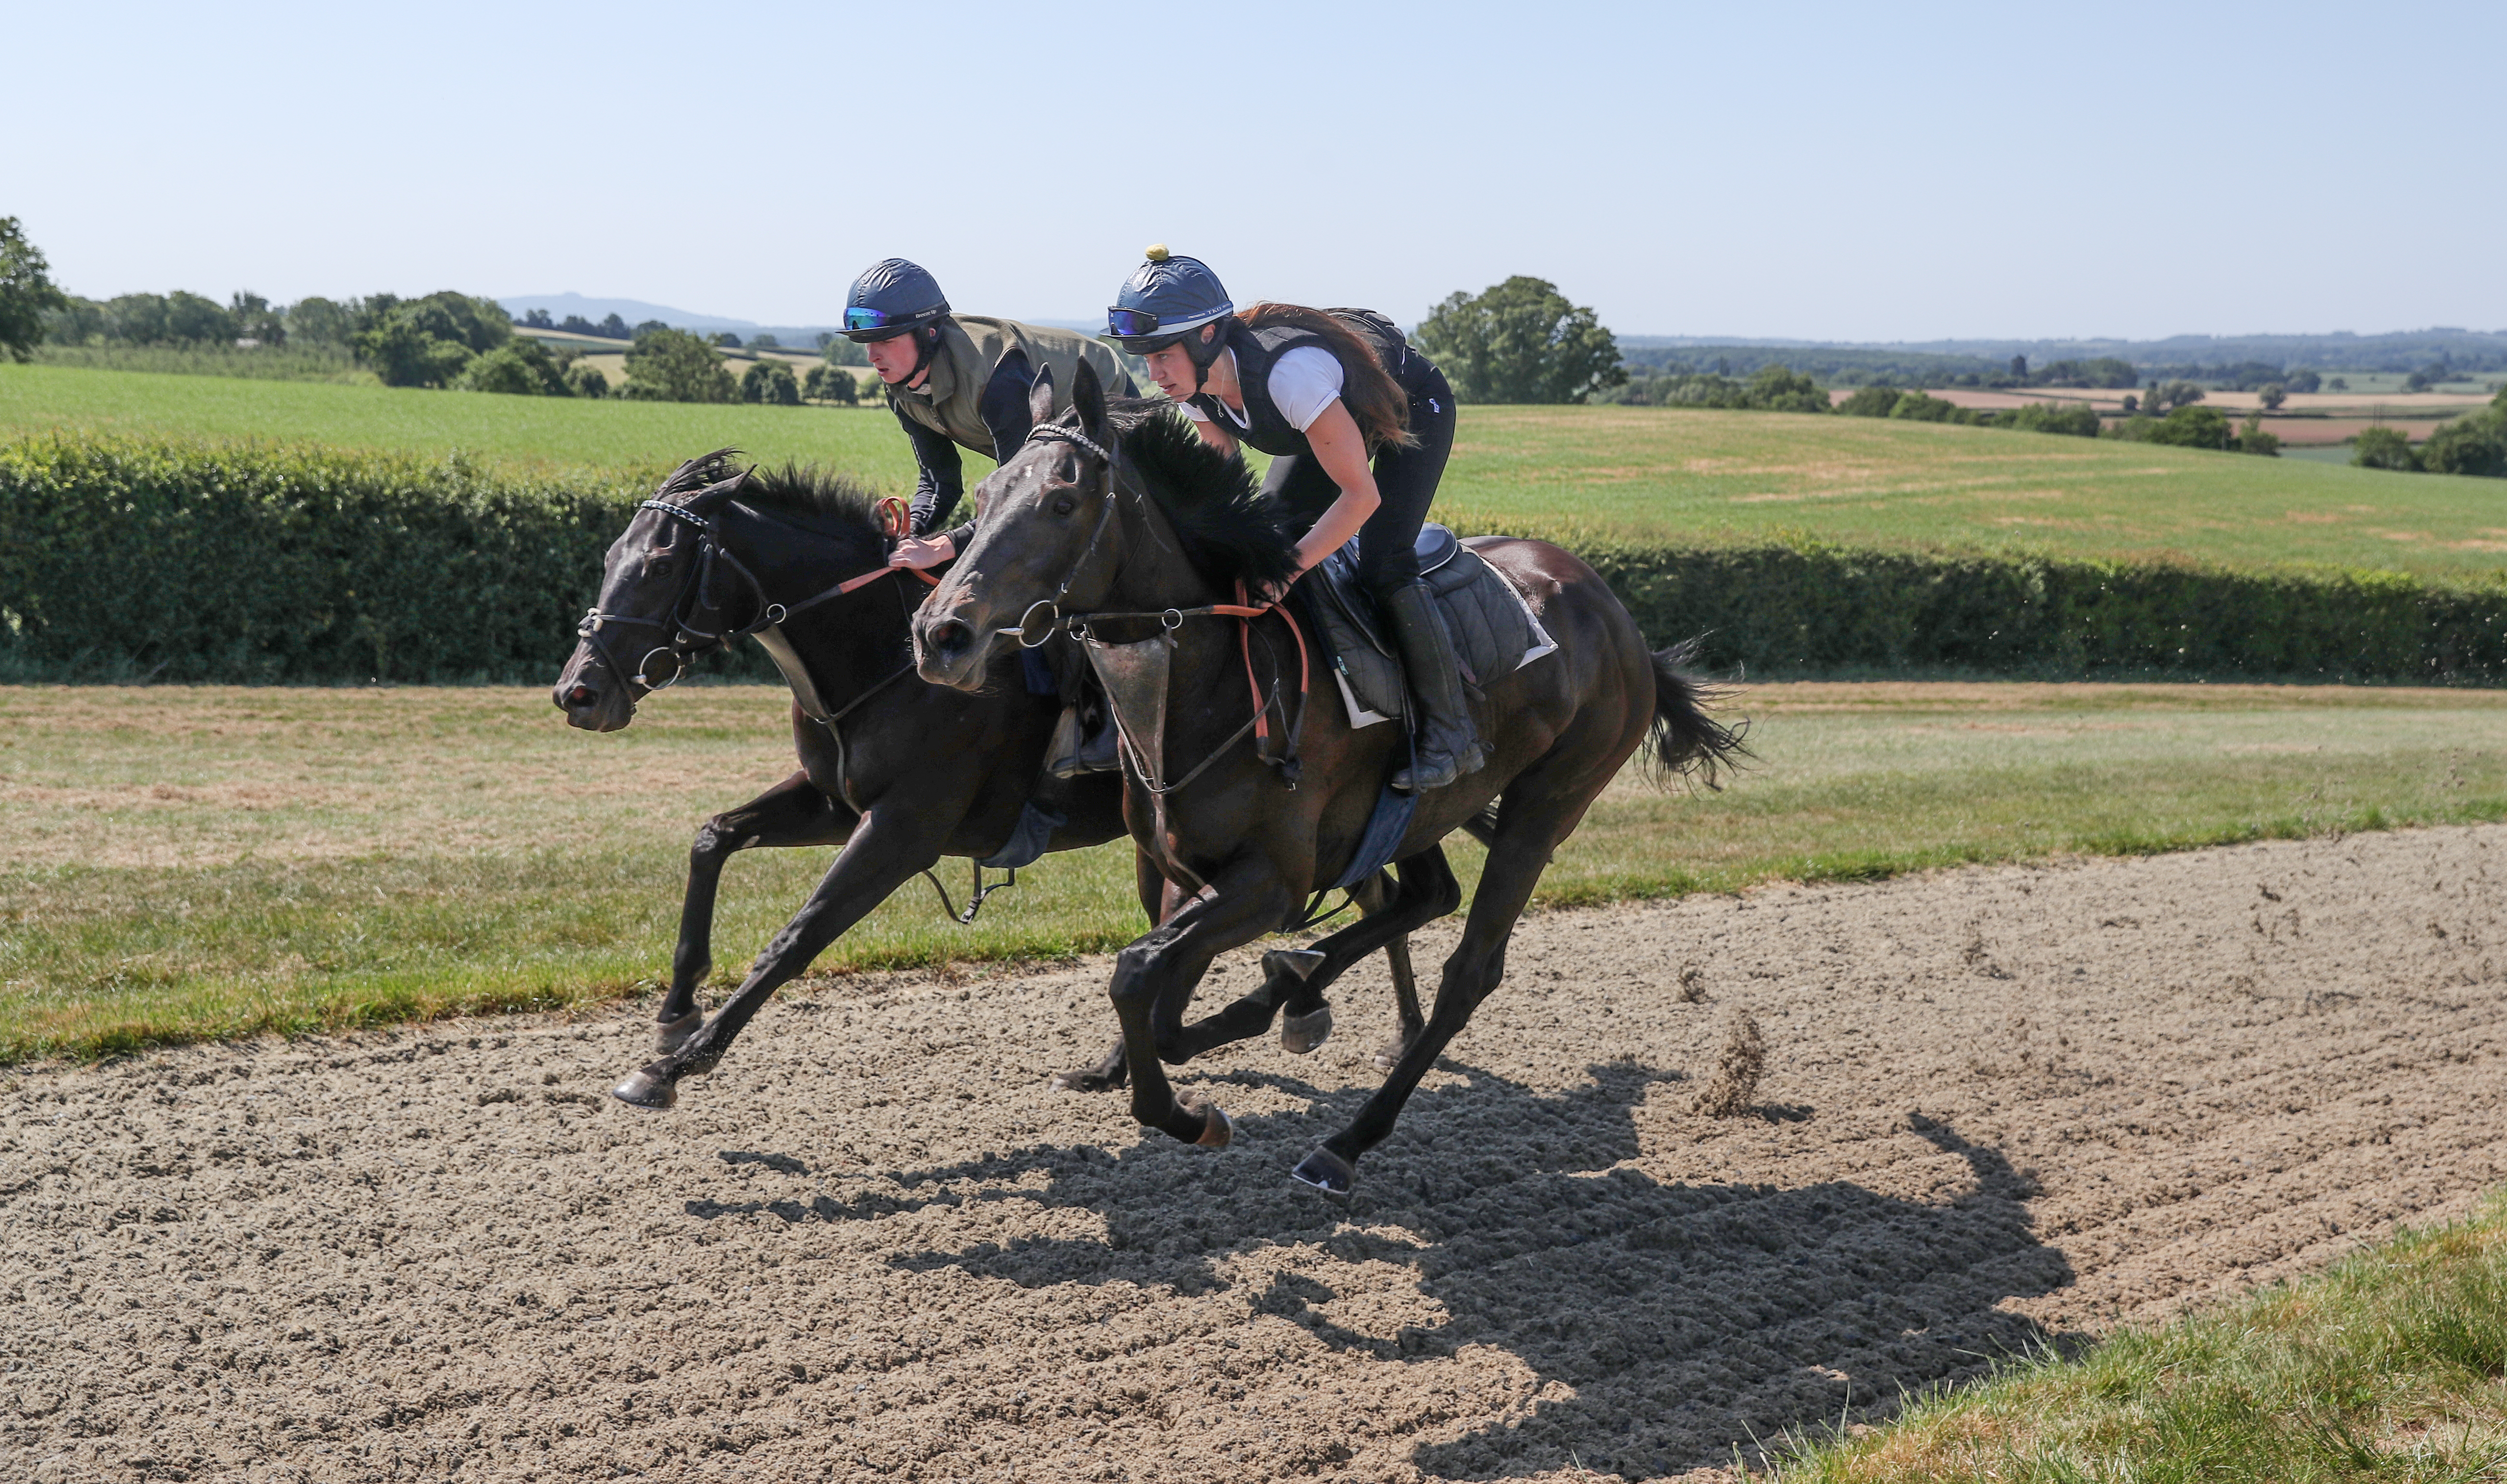 Horses from Ed de Giles stables on the gallops at his yard in Little Marcle, Herefordshire .